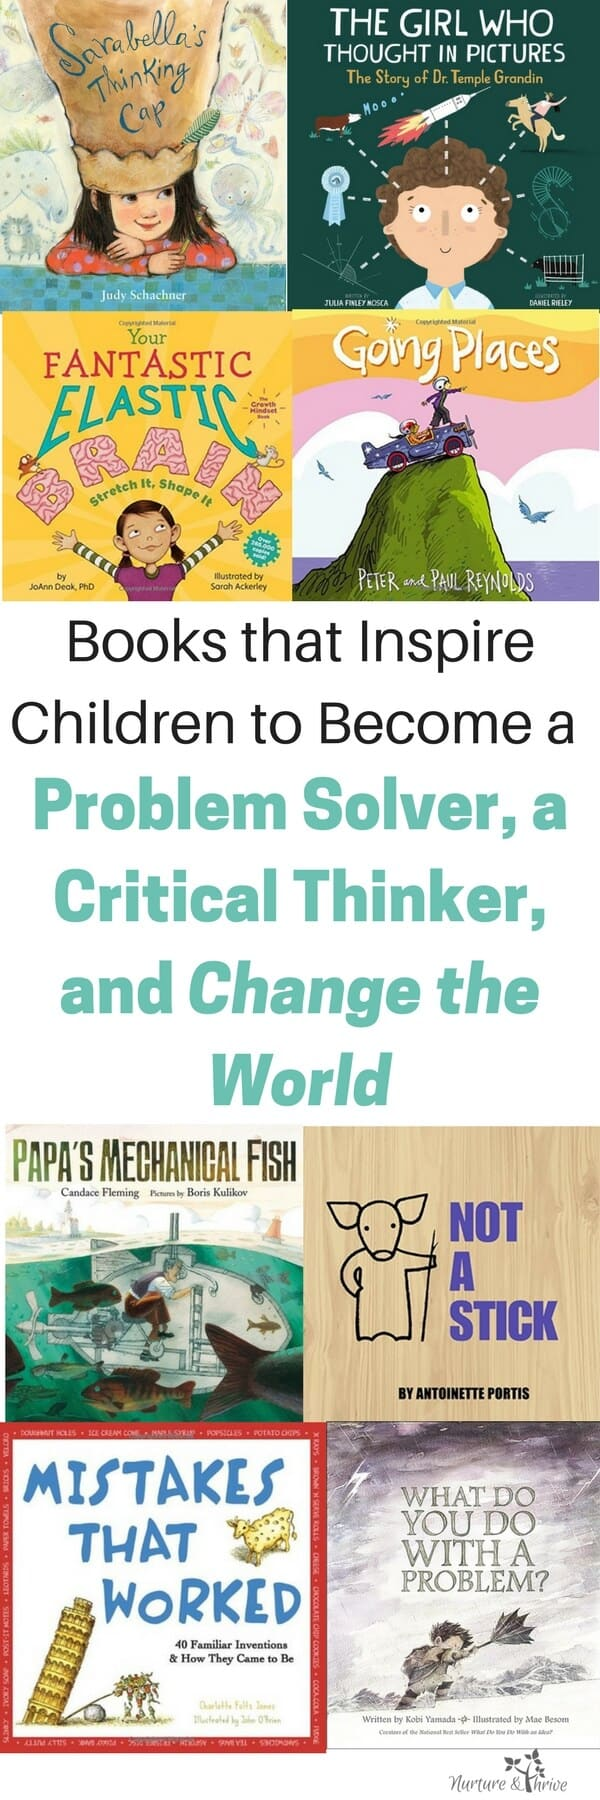 Four ways to raise your child to be a critical thinker, an innovator, and to embrace diversity in thinking. These books teach children about metacognition and the brain. #criticalthinking #metacognition #childrensbooks #diversity #parenting #mindfulparenting #perseverance #creativity #braindevelopment #scienceforkids #sciencebooks #giftedkids